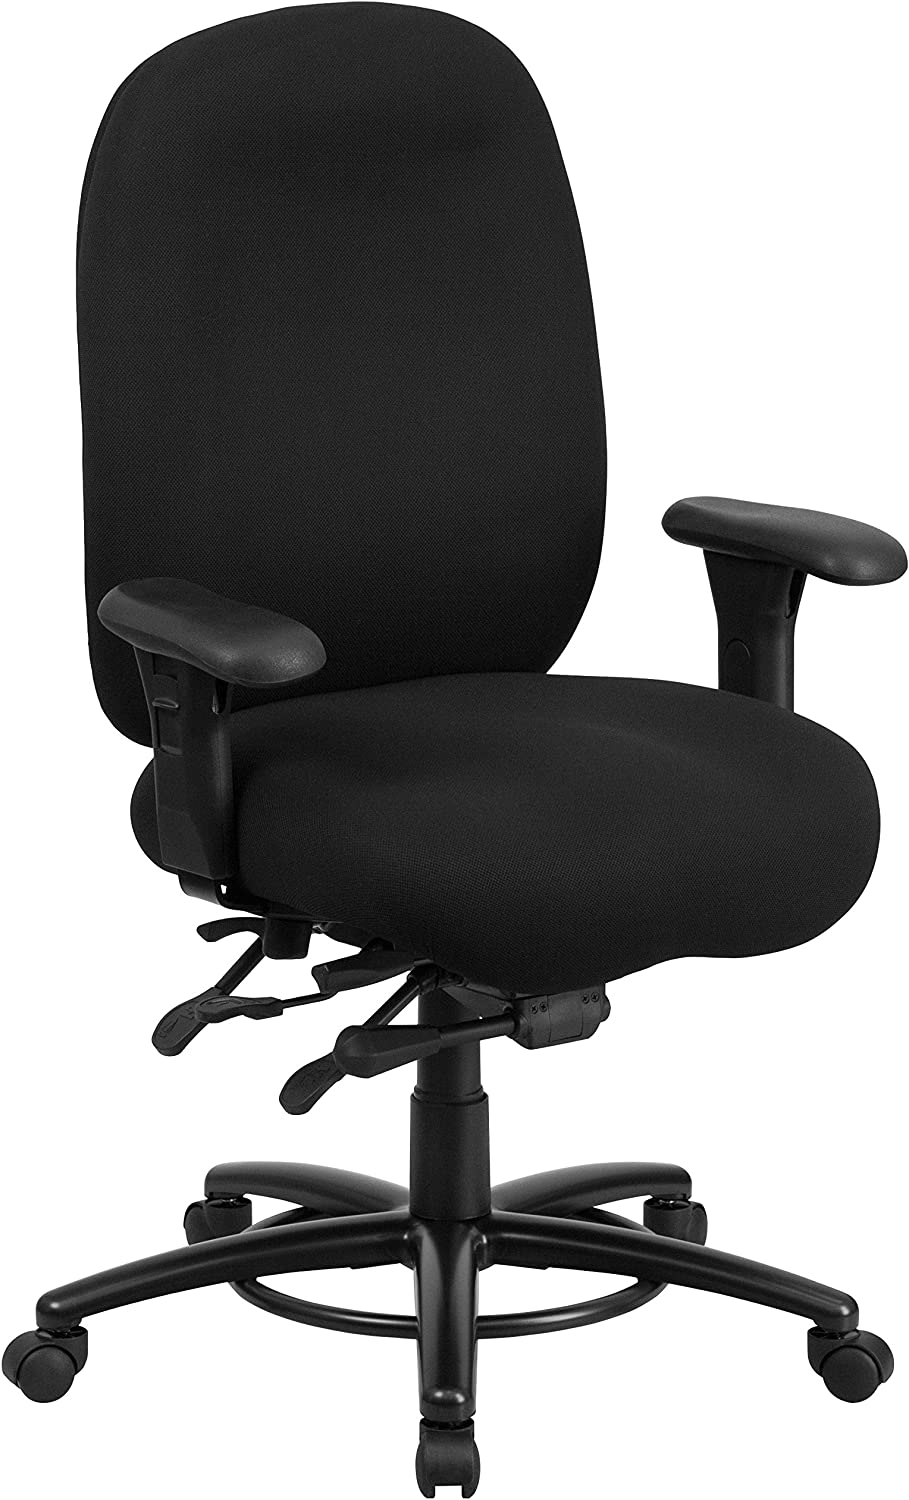 Flash Furniture HERCULES Series 24 7 Intensive Use Big & Tall 350 lb. Rated Black Fabric Multifunction Swivel Chair with Foot Ring